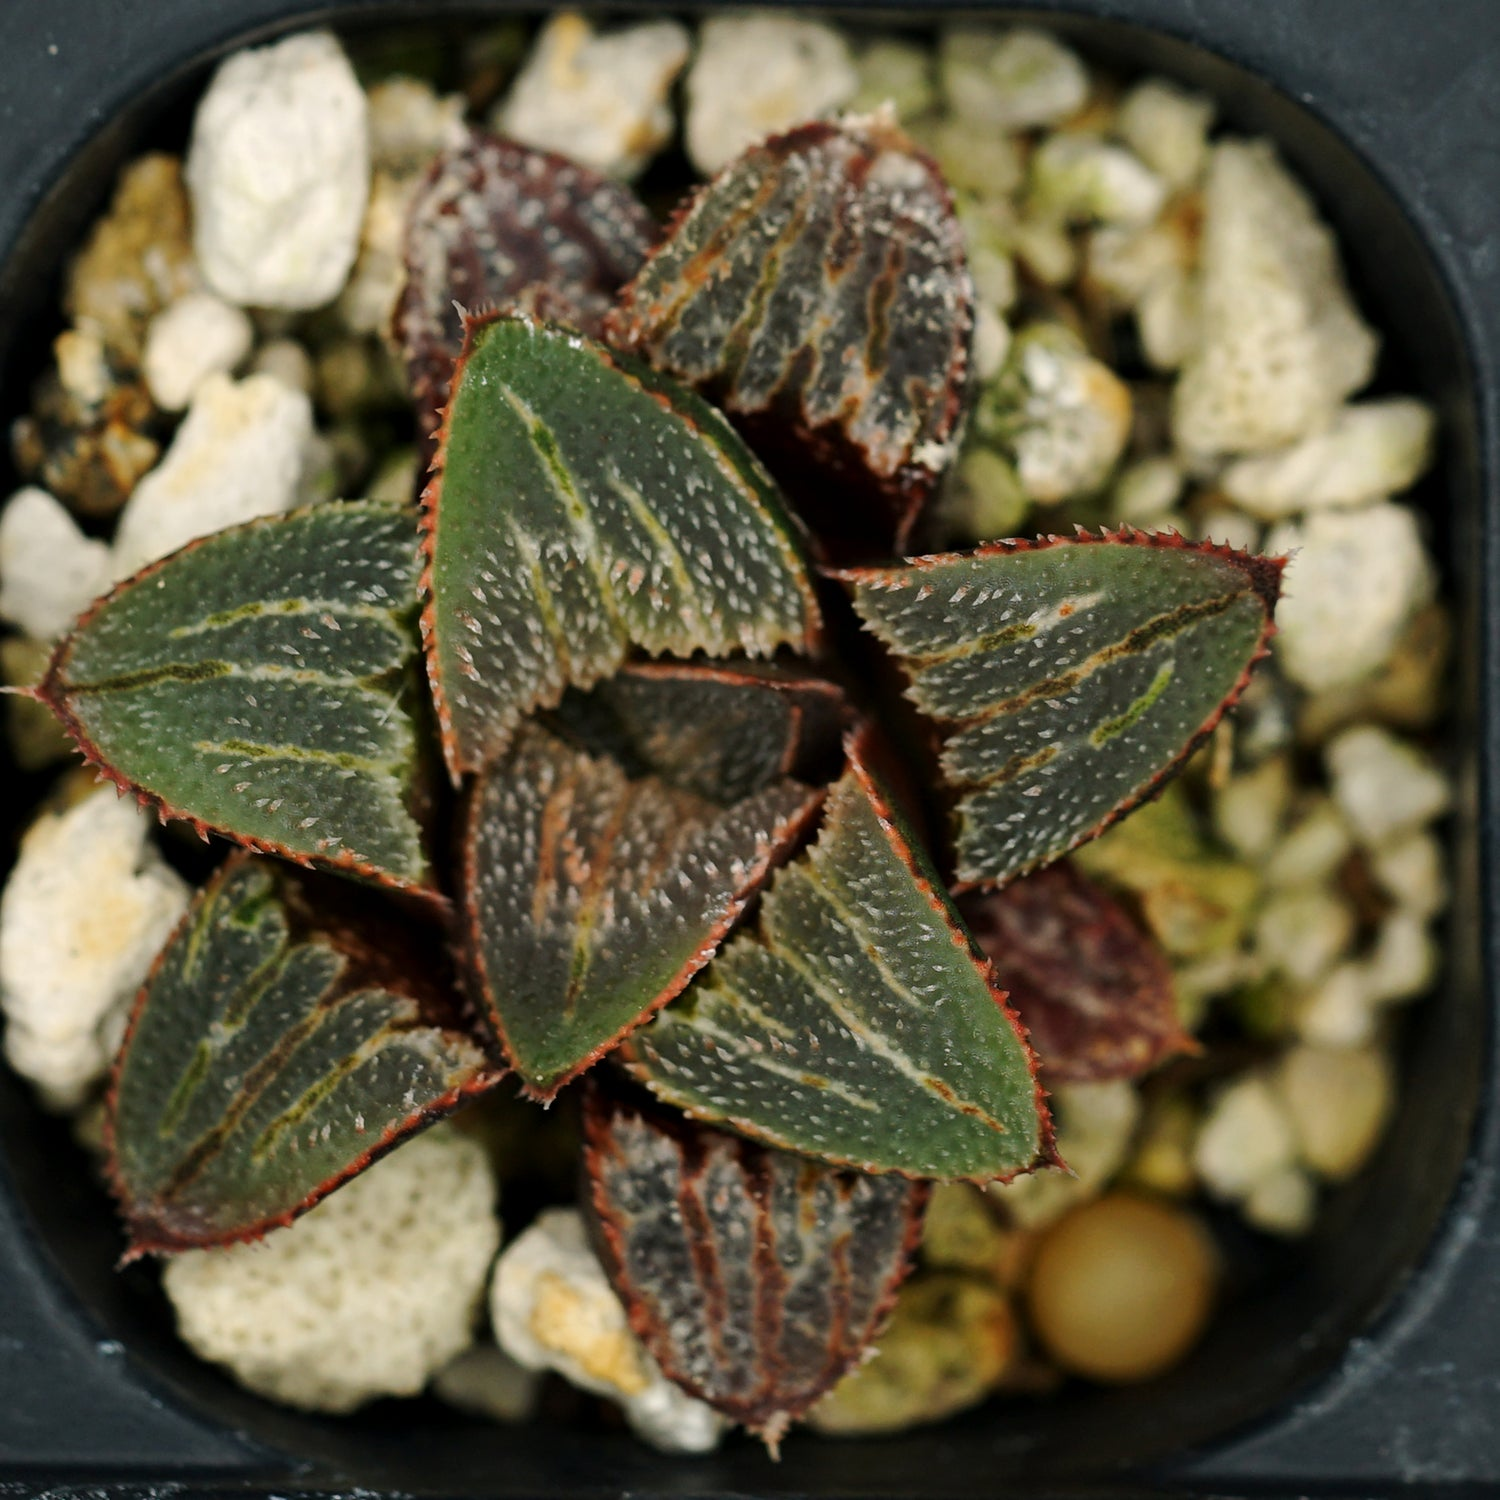 Haworthia hybrid series  PP161, 4 siblings